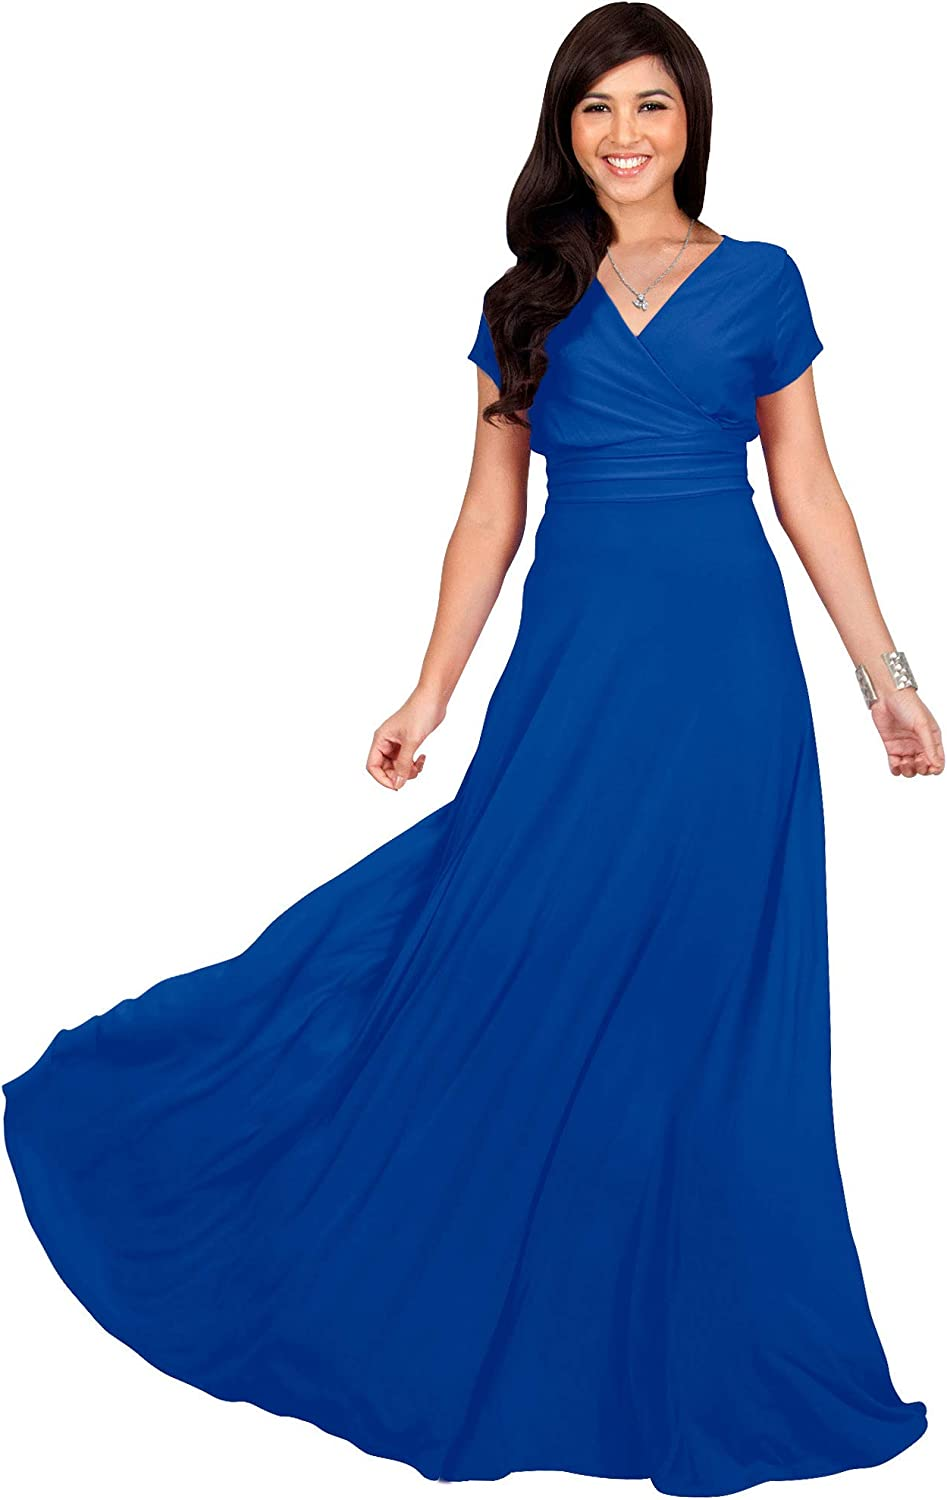 KOH KOH Womens Sexy Cap Short Sleeve VNeck Flowy Cocktail Gown